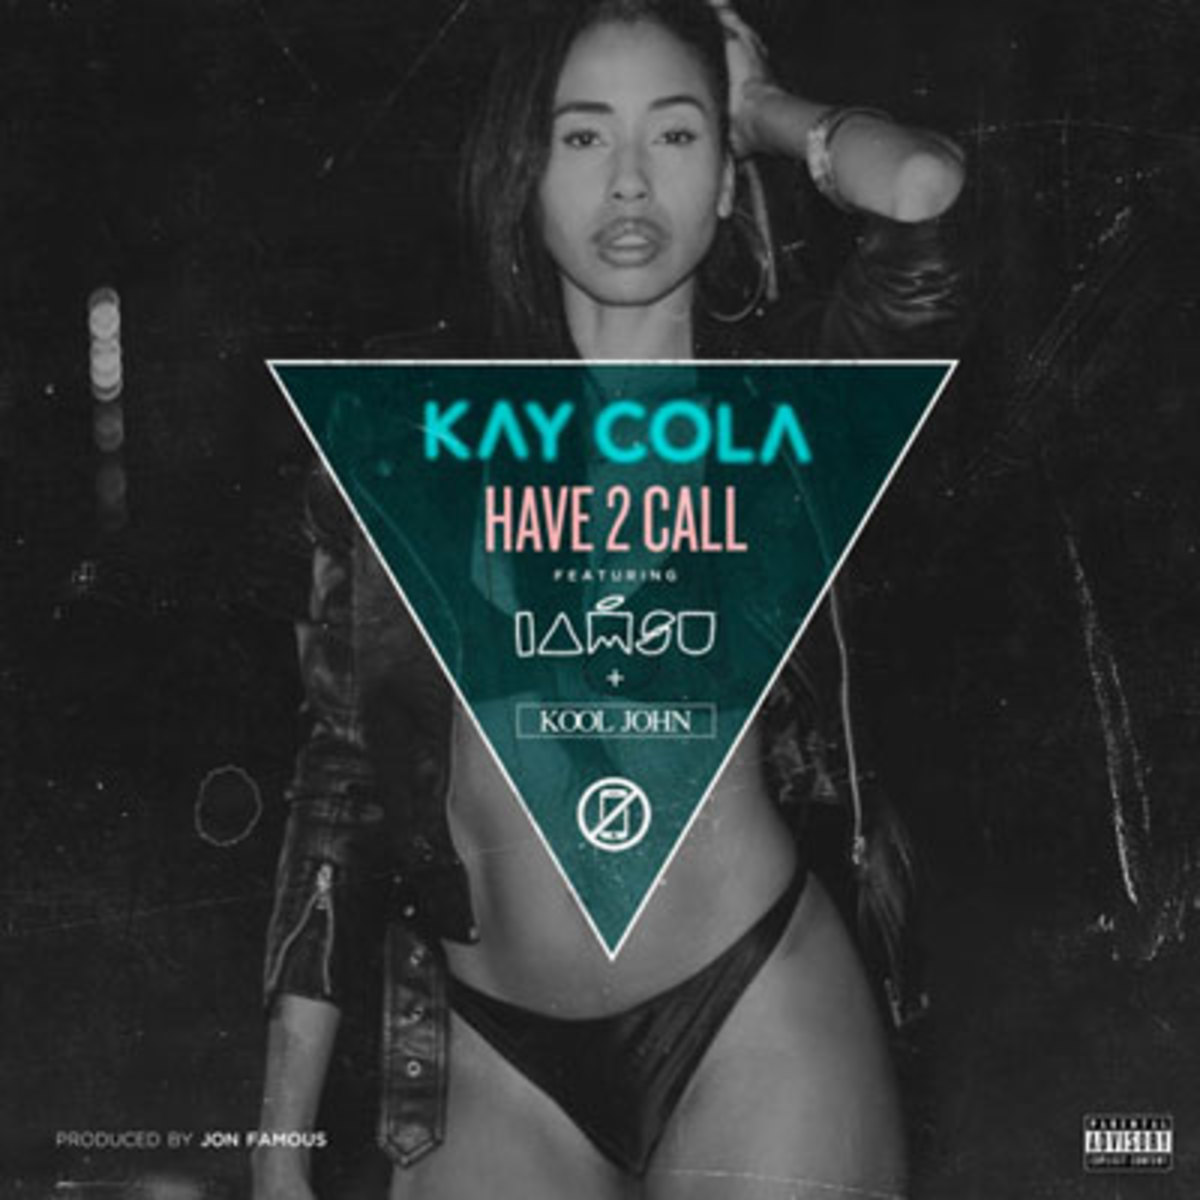 kay-cola-have-2-call.jpg